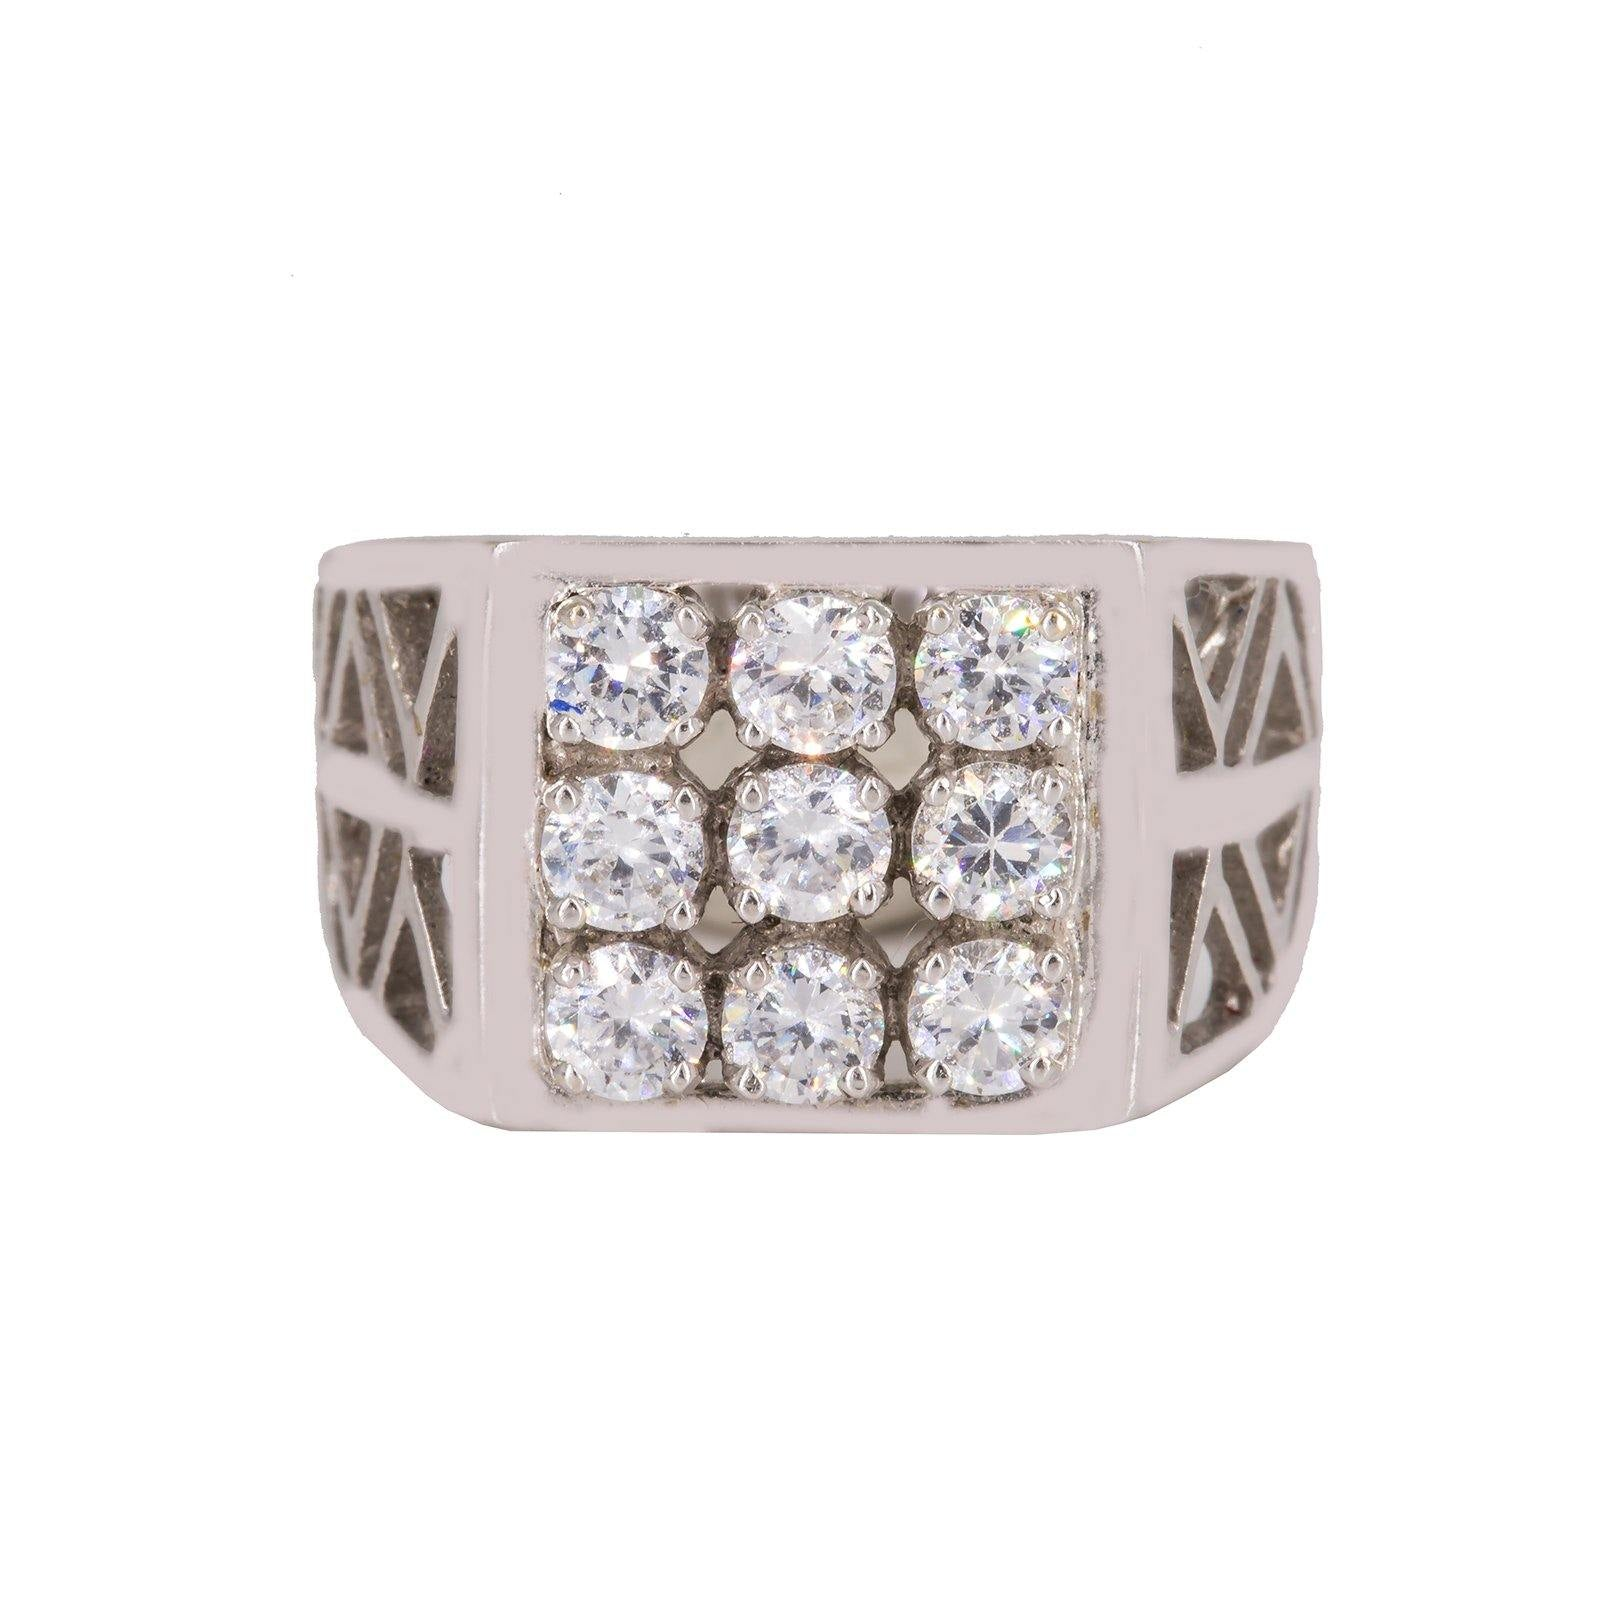 22K White Gold Men's Ring W/ Cubic Zirconia & Cut Out Band